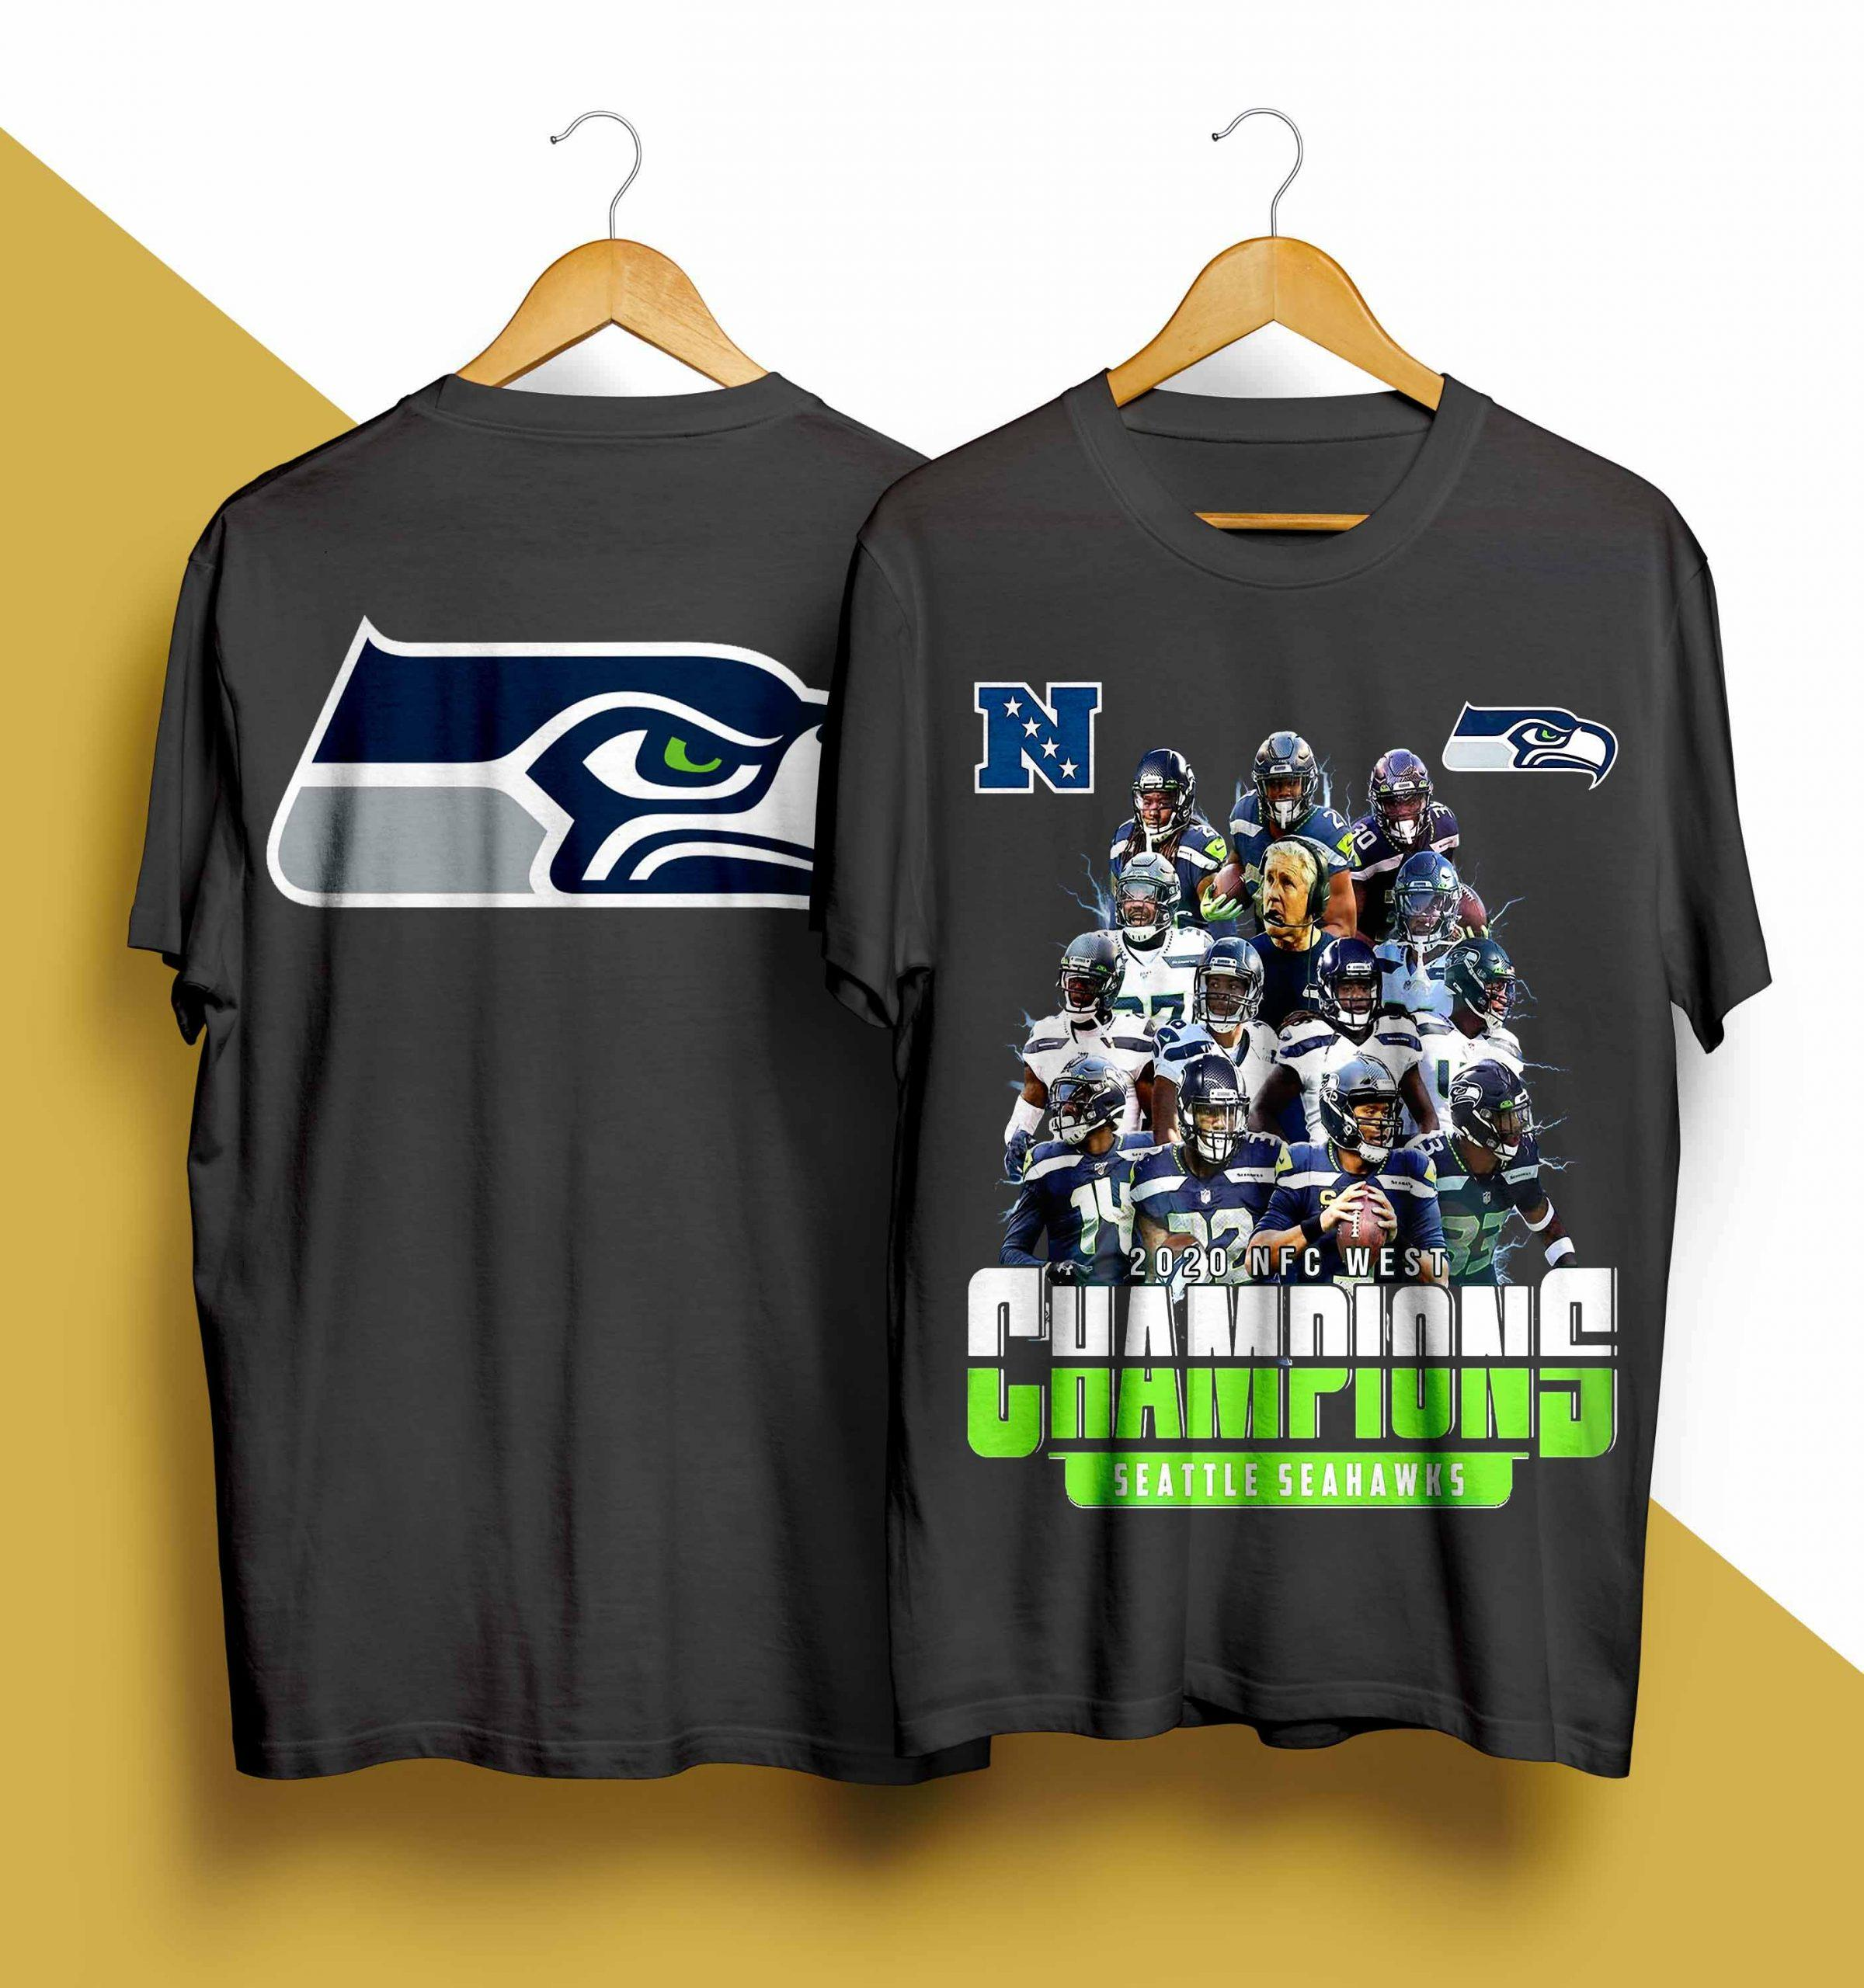 2020 Nfc West Champions Seattle Seahawks Shirt